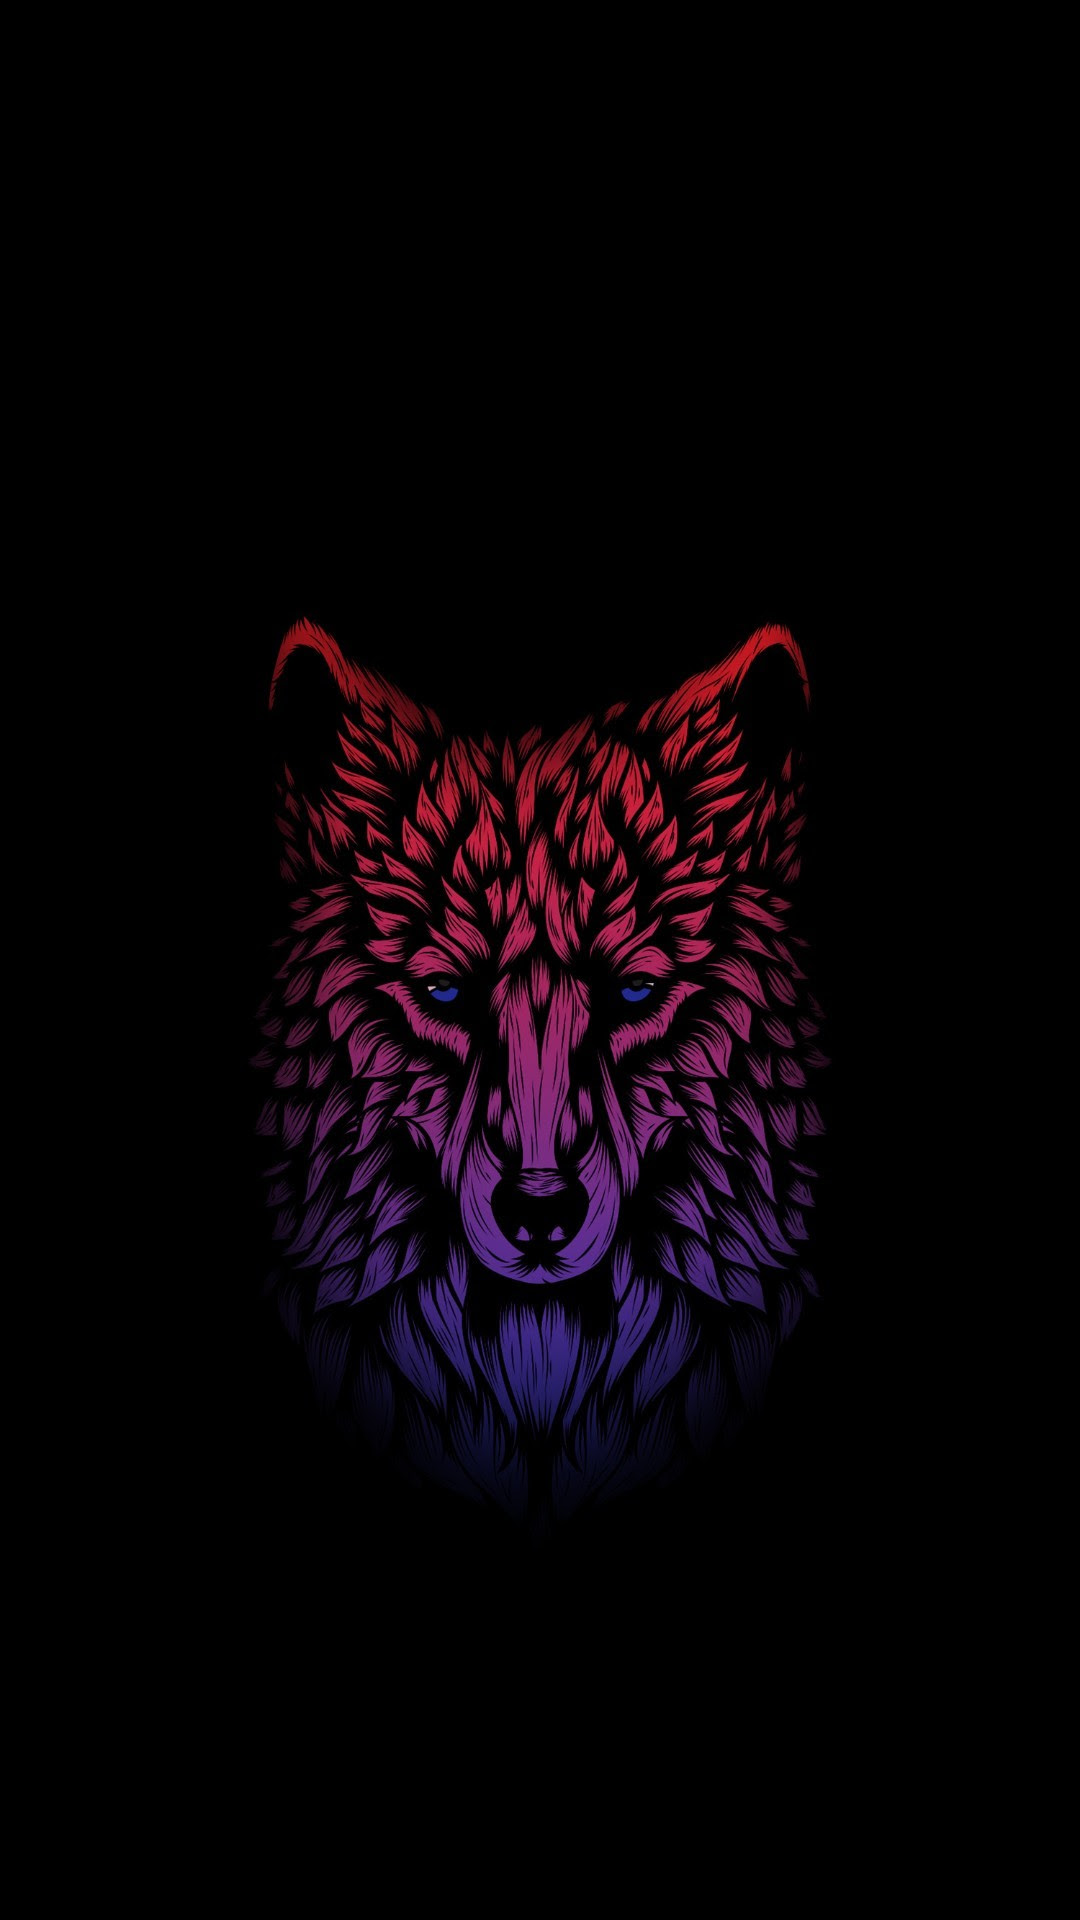 Amoled Wallpapers 81+ images | 4 Wallpaper